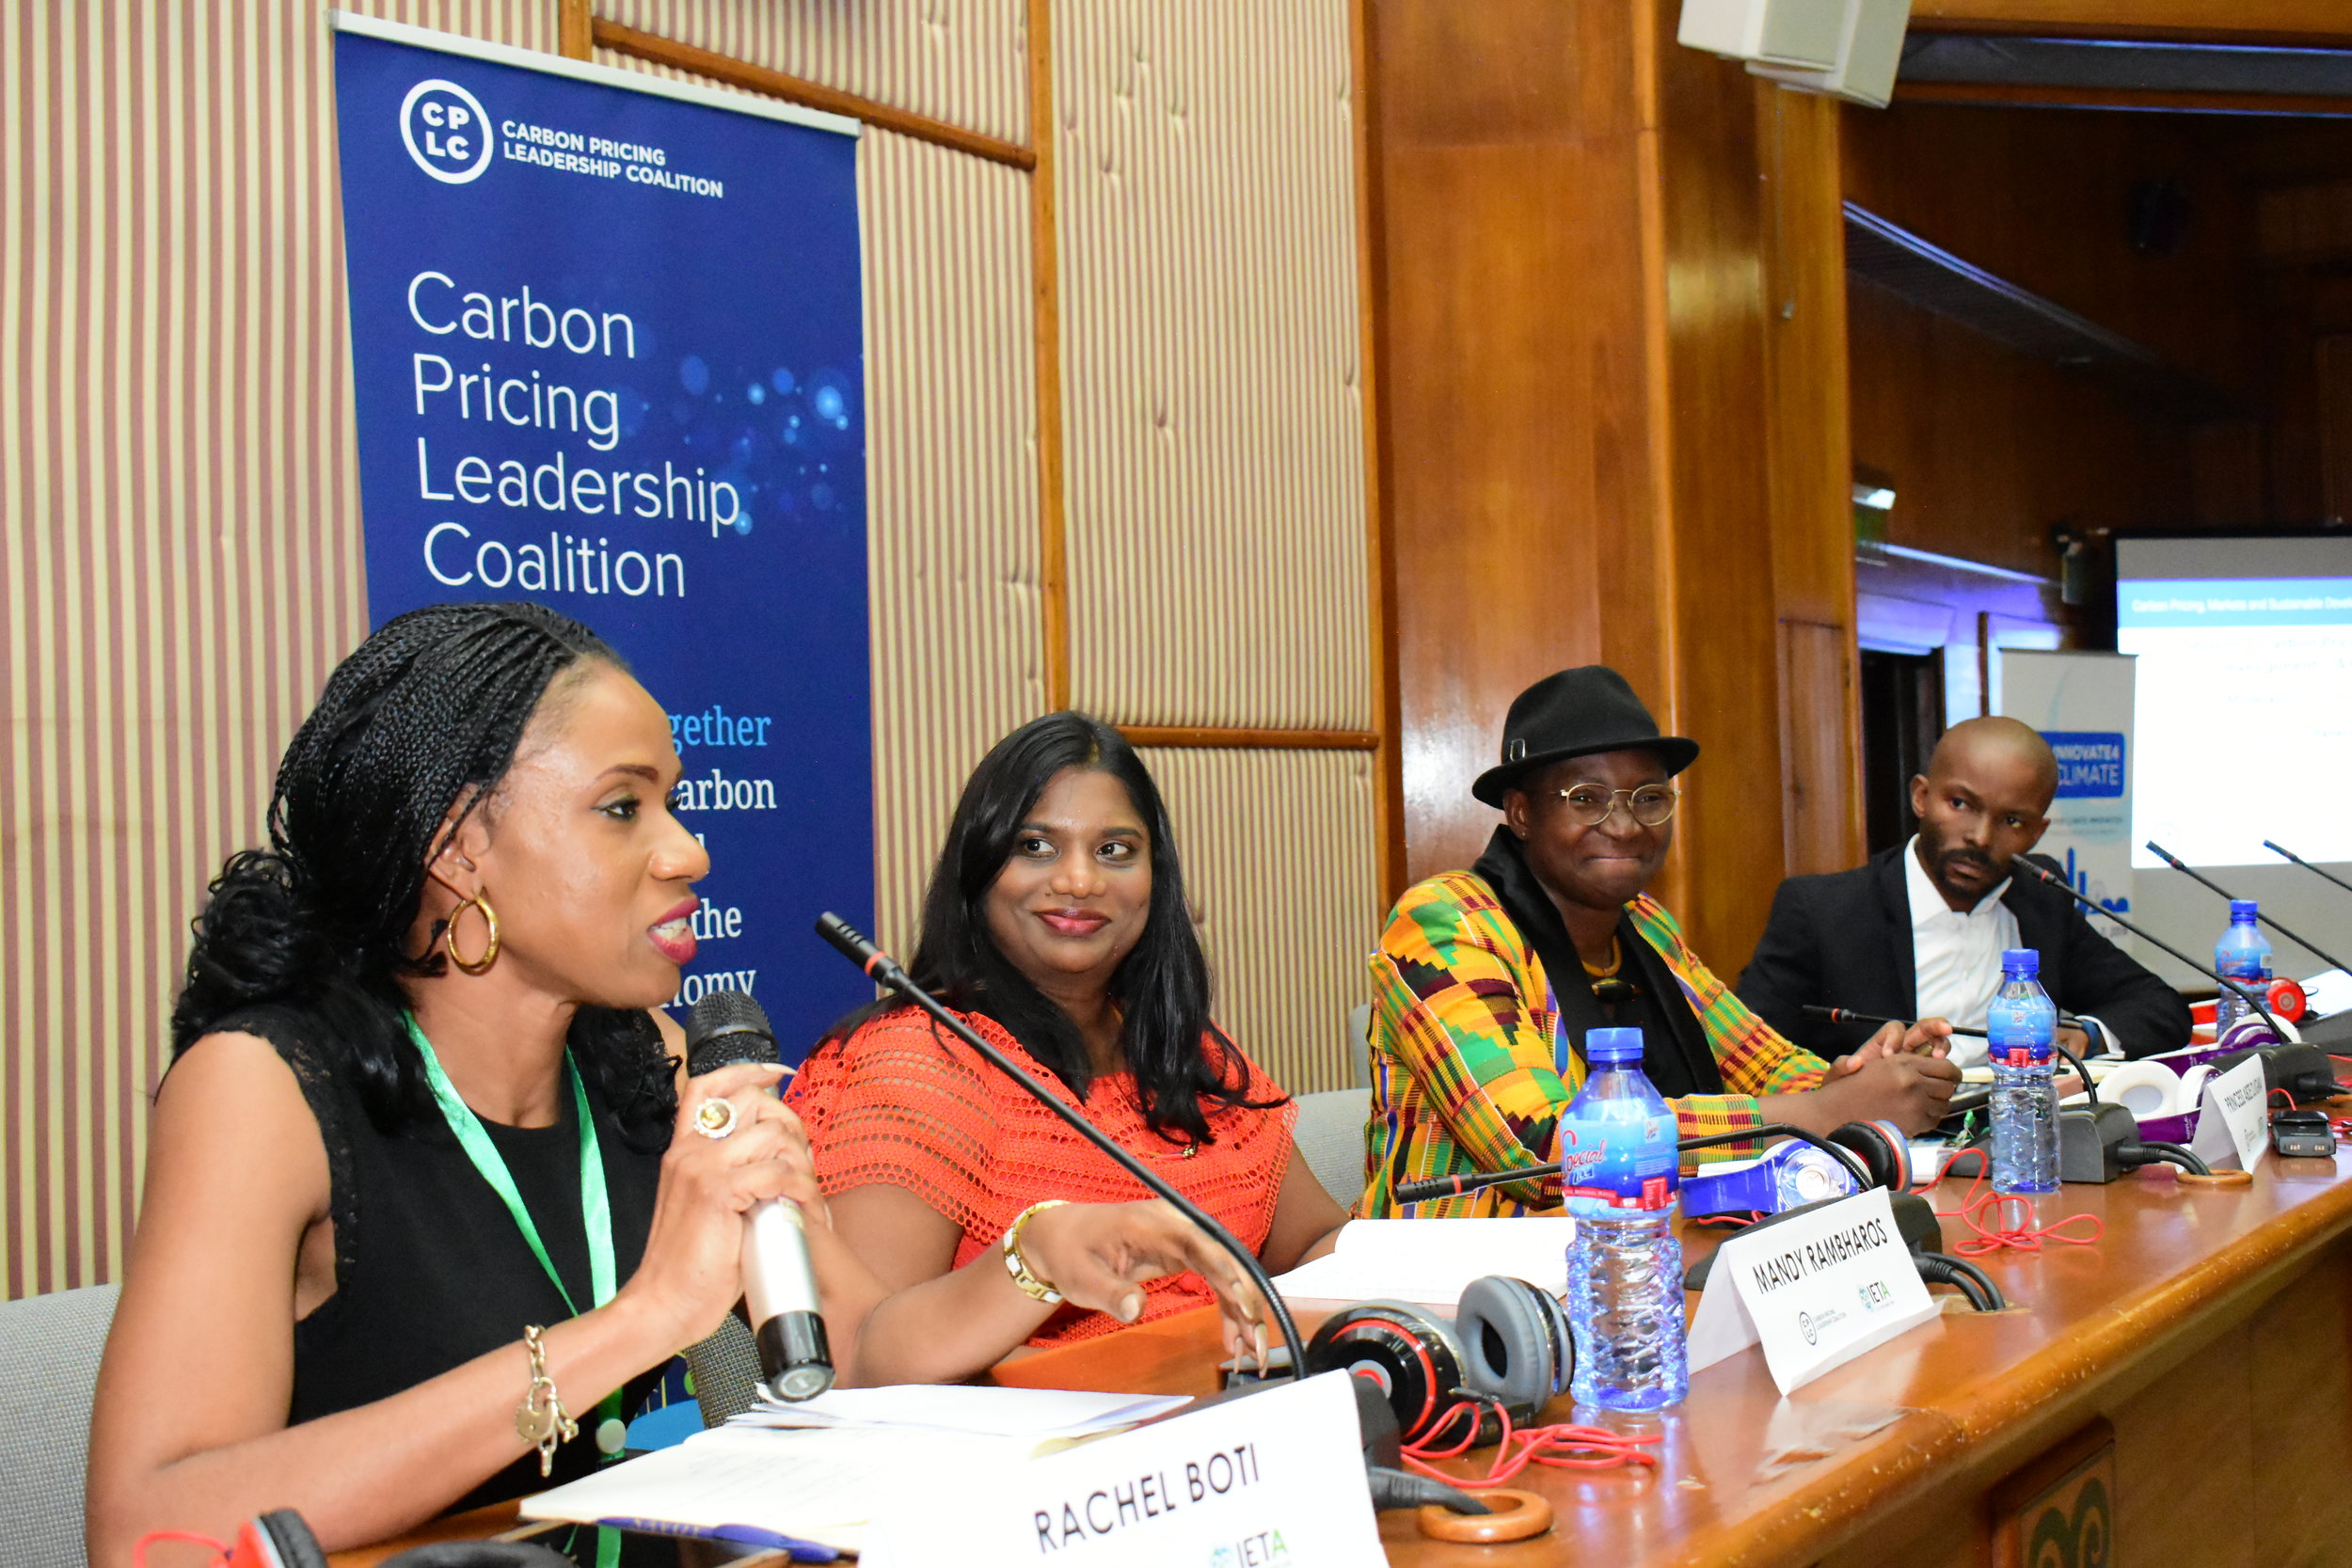 Rachel Boti, Ministry of Environment and Sustainable Development, Côte d'Ivoire